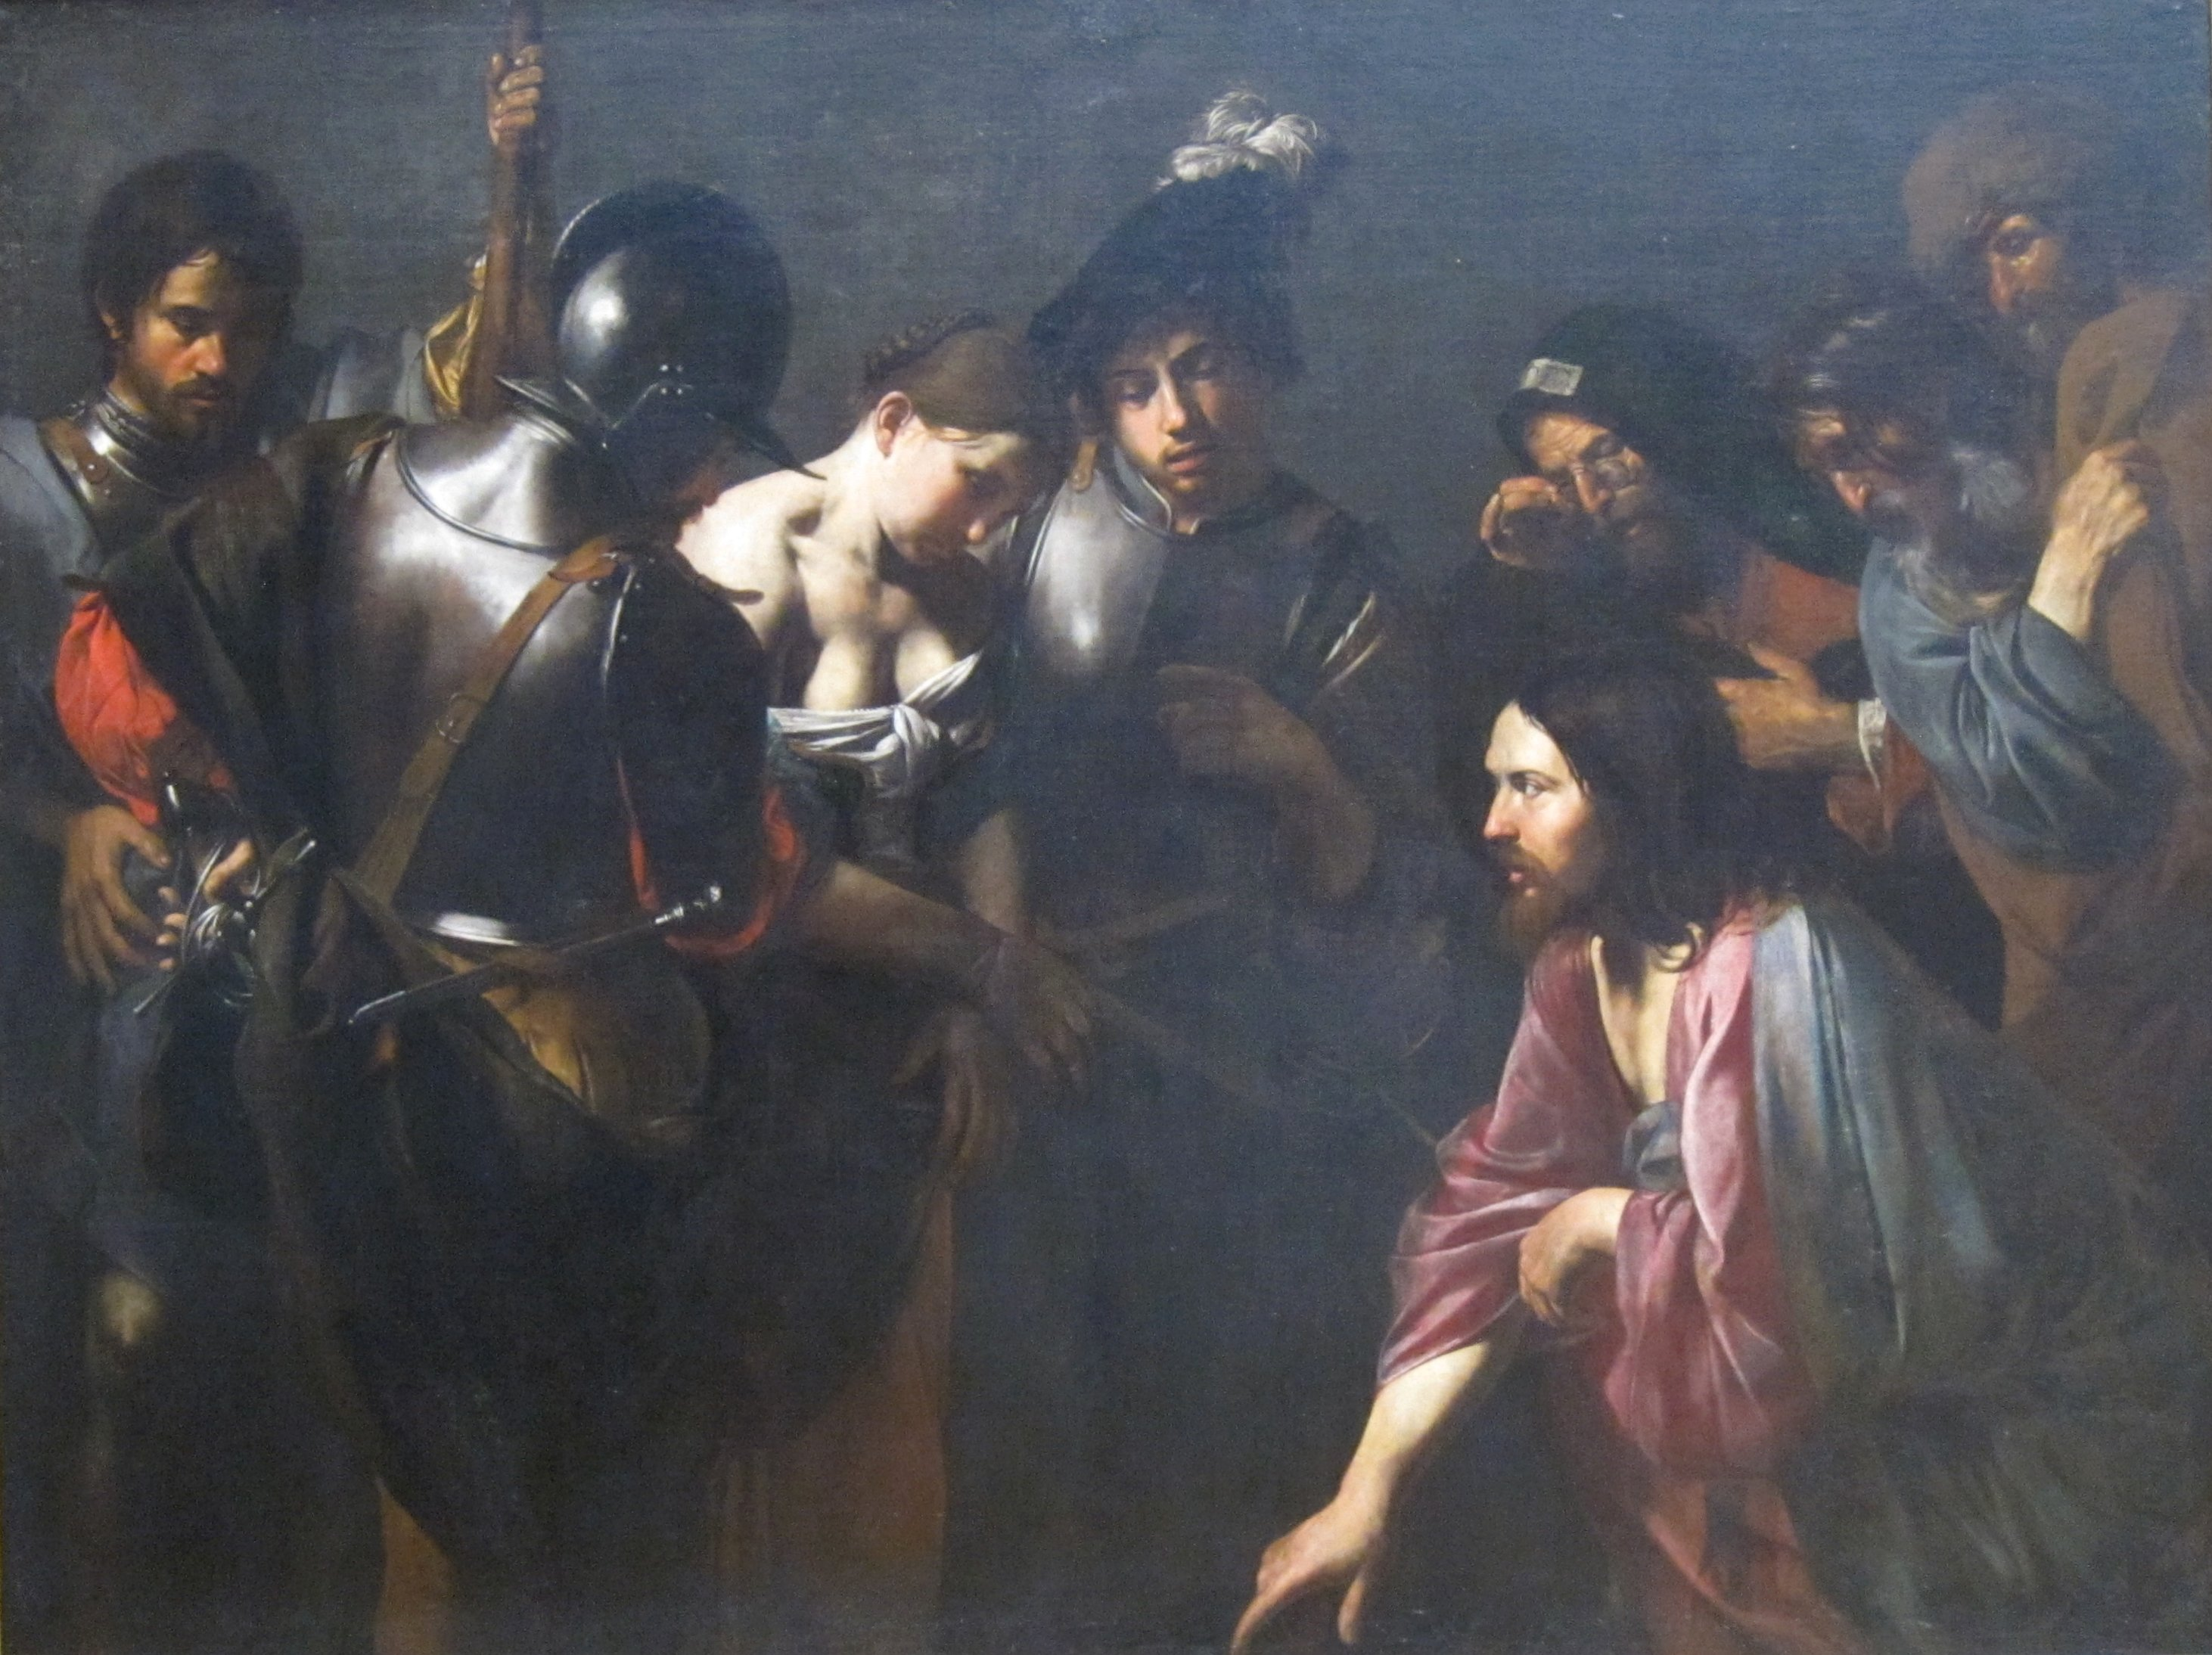 File:Christ and the Adulteress by Valentin de Boulogne, Getty Center.JPG